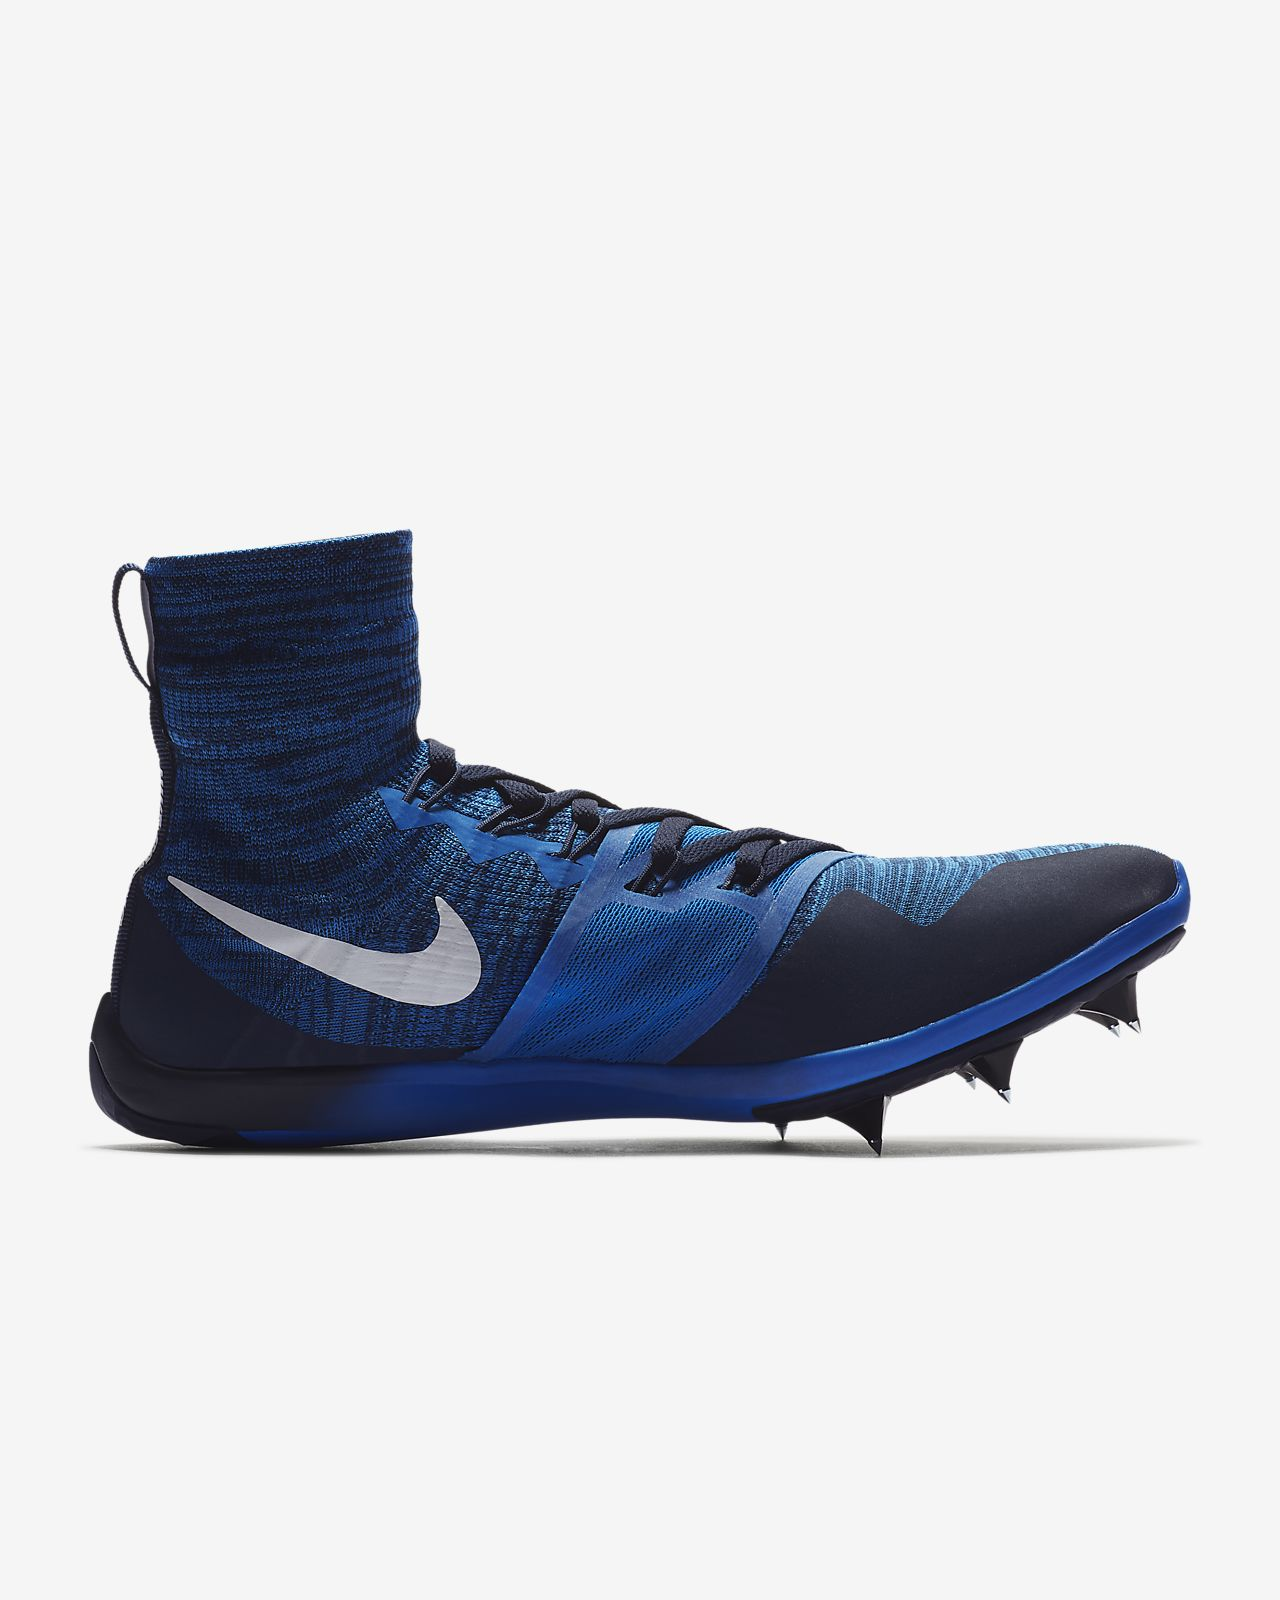 competitive price 356dd 646f5 ... Nike Zoom Victory 4 XC Unisex Track Spike